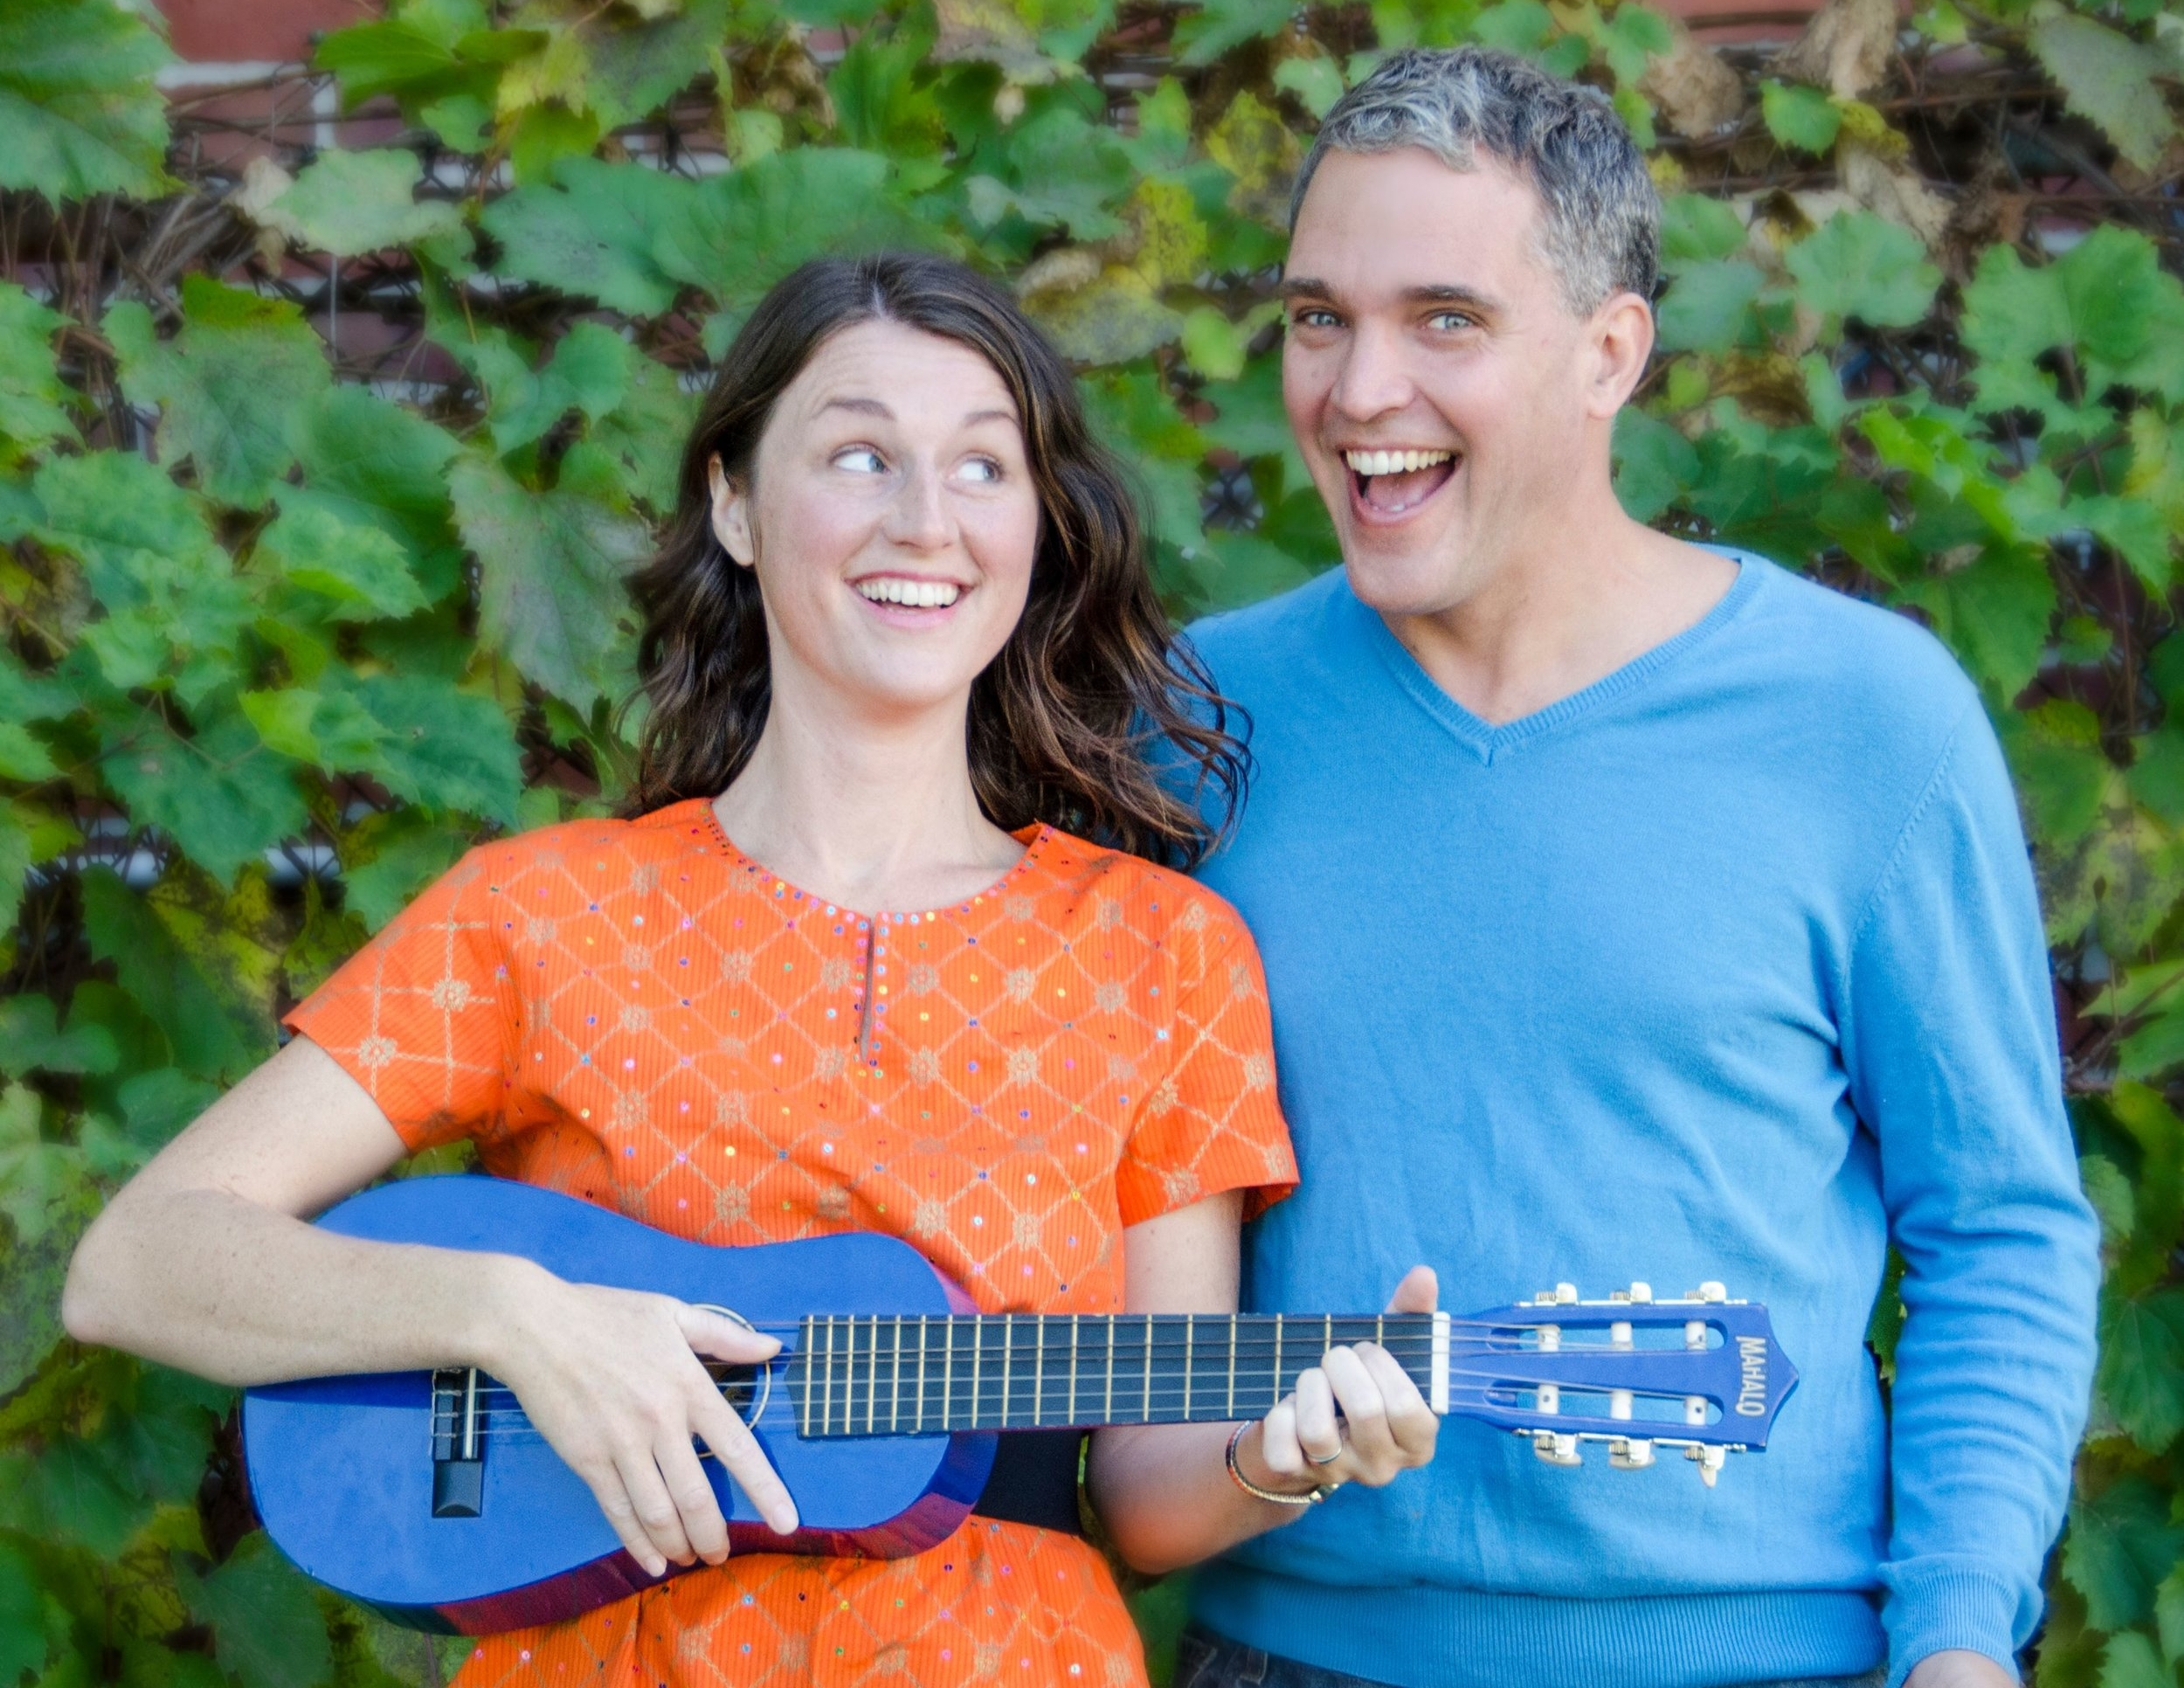 Hallowe'en howl with soli&rob - Now closed. Thank you for coming!A singalong show with puppets and happy hosts, all on a Hallowe'en theme!Learn more about Soli & Rob HERE.All ages